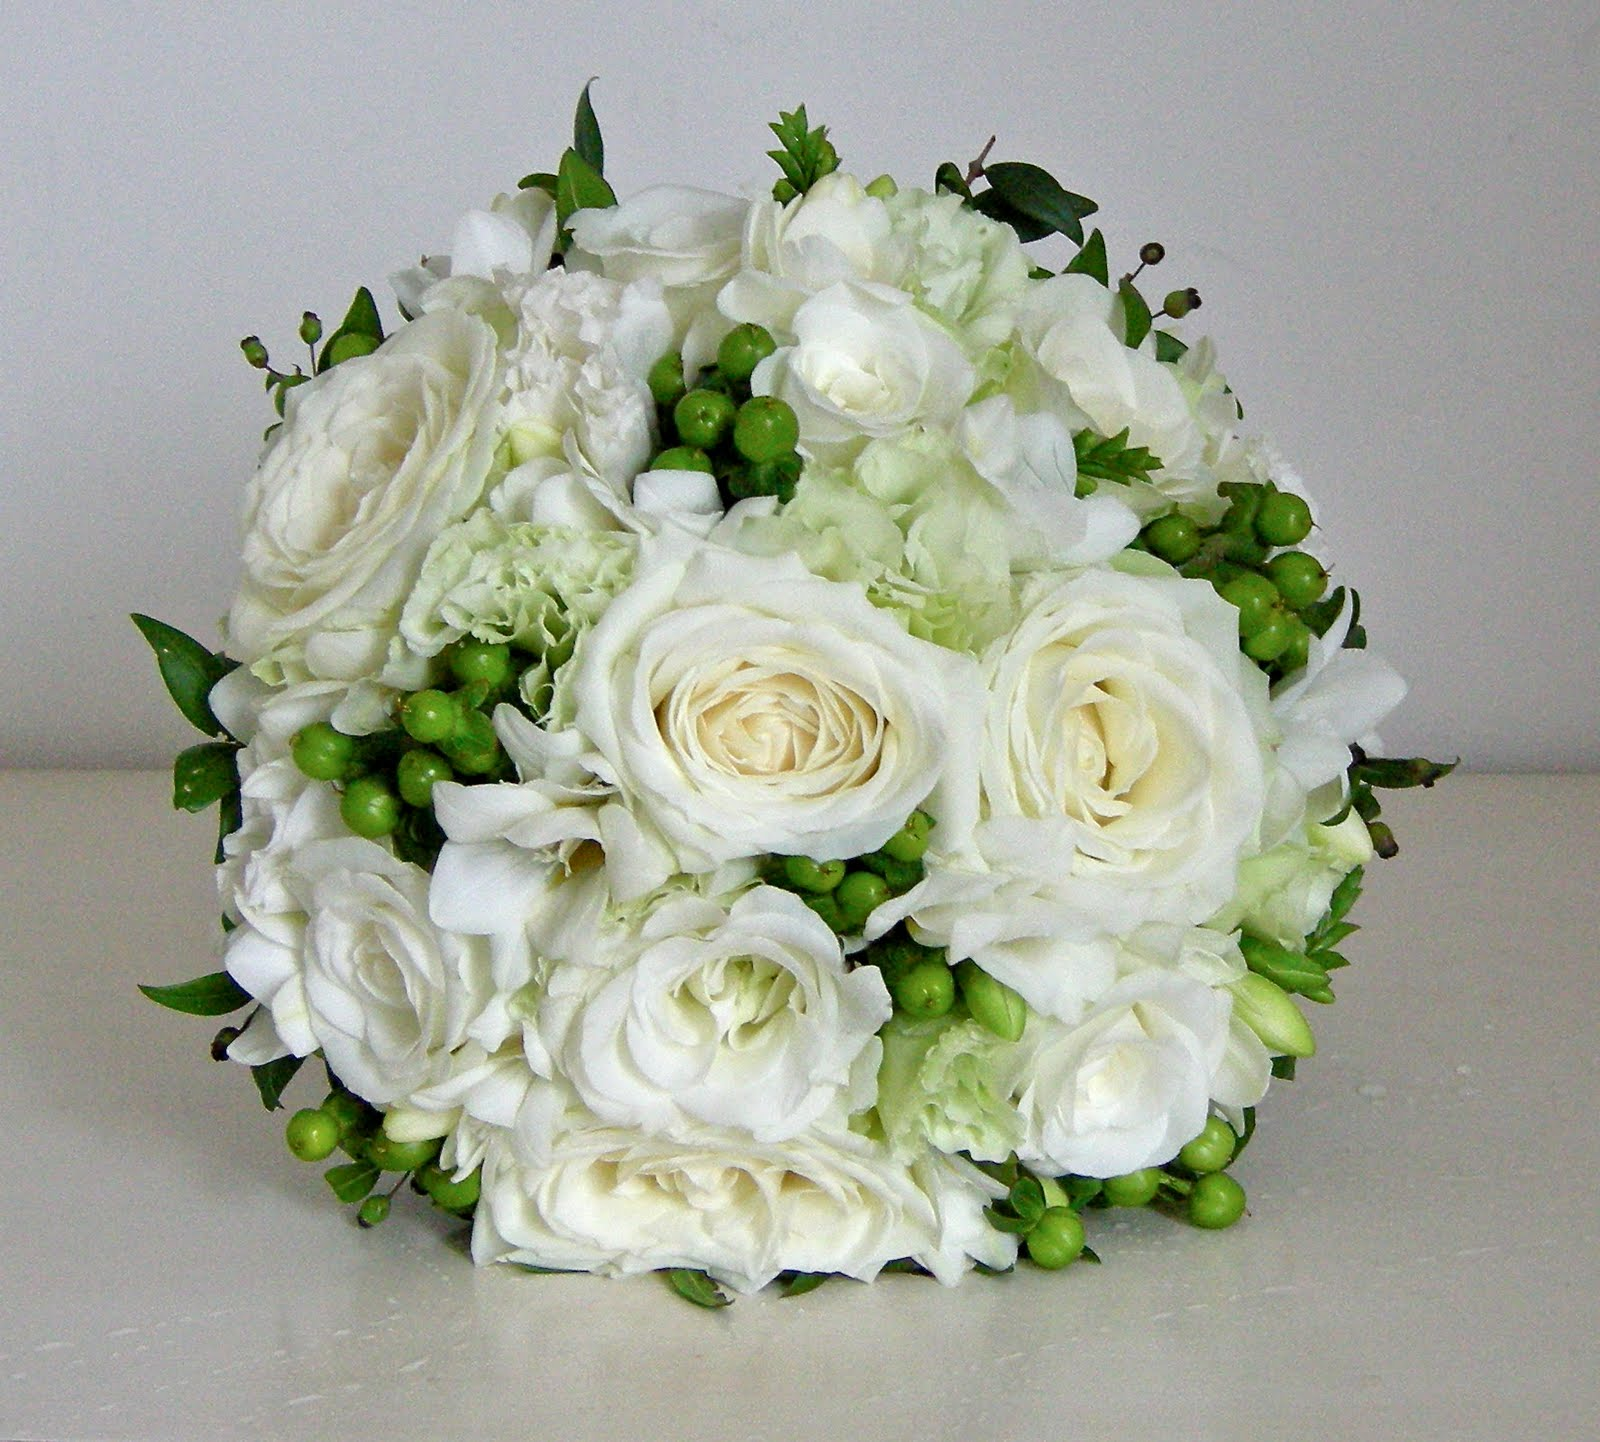 White Wedding Flowers: Wedding Flowers Blog: Holly's Classic Green And White